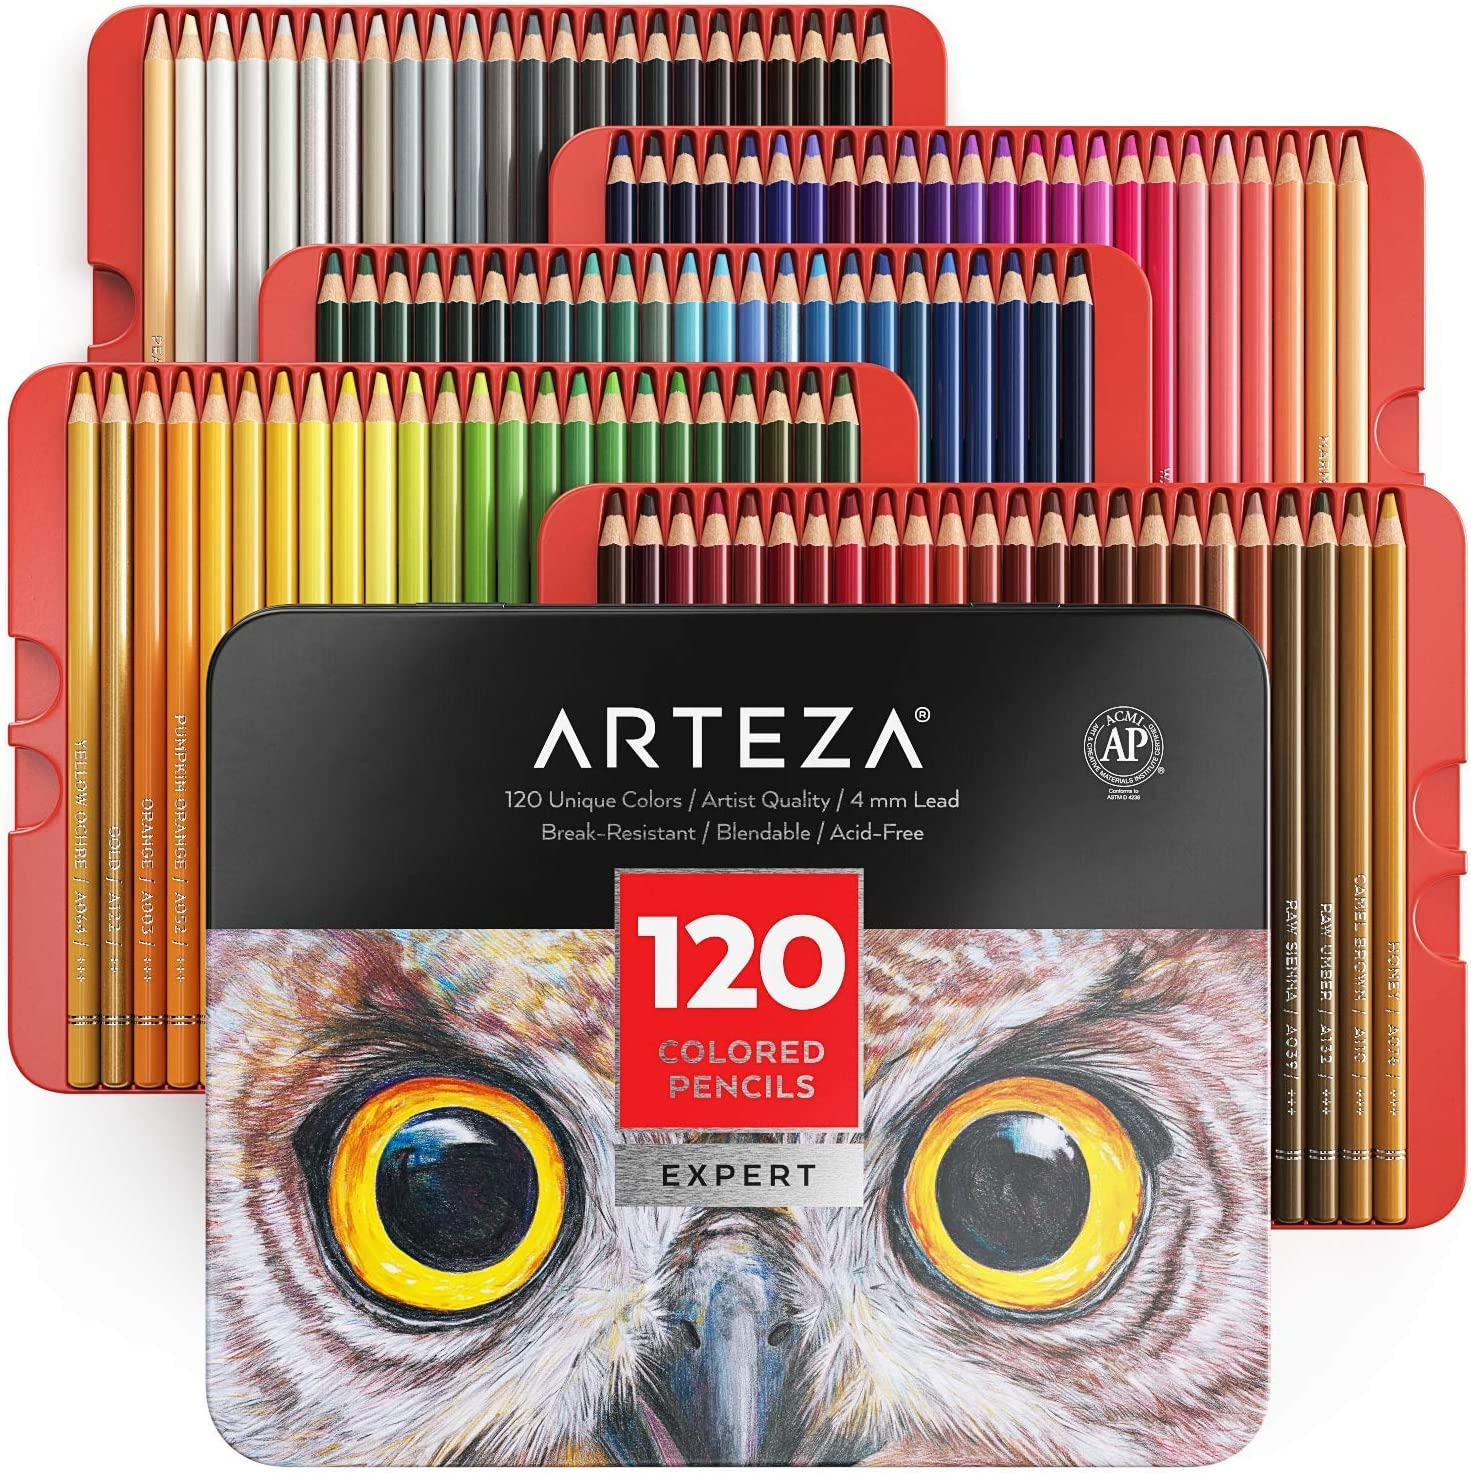 Arteza Professional Coloured Pencils for Adults /& Kids Shading for Colouring Set of 120 Drawing Break-Resistant Cores Portable Tin Case